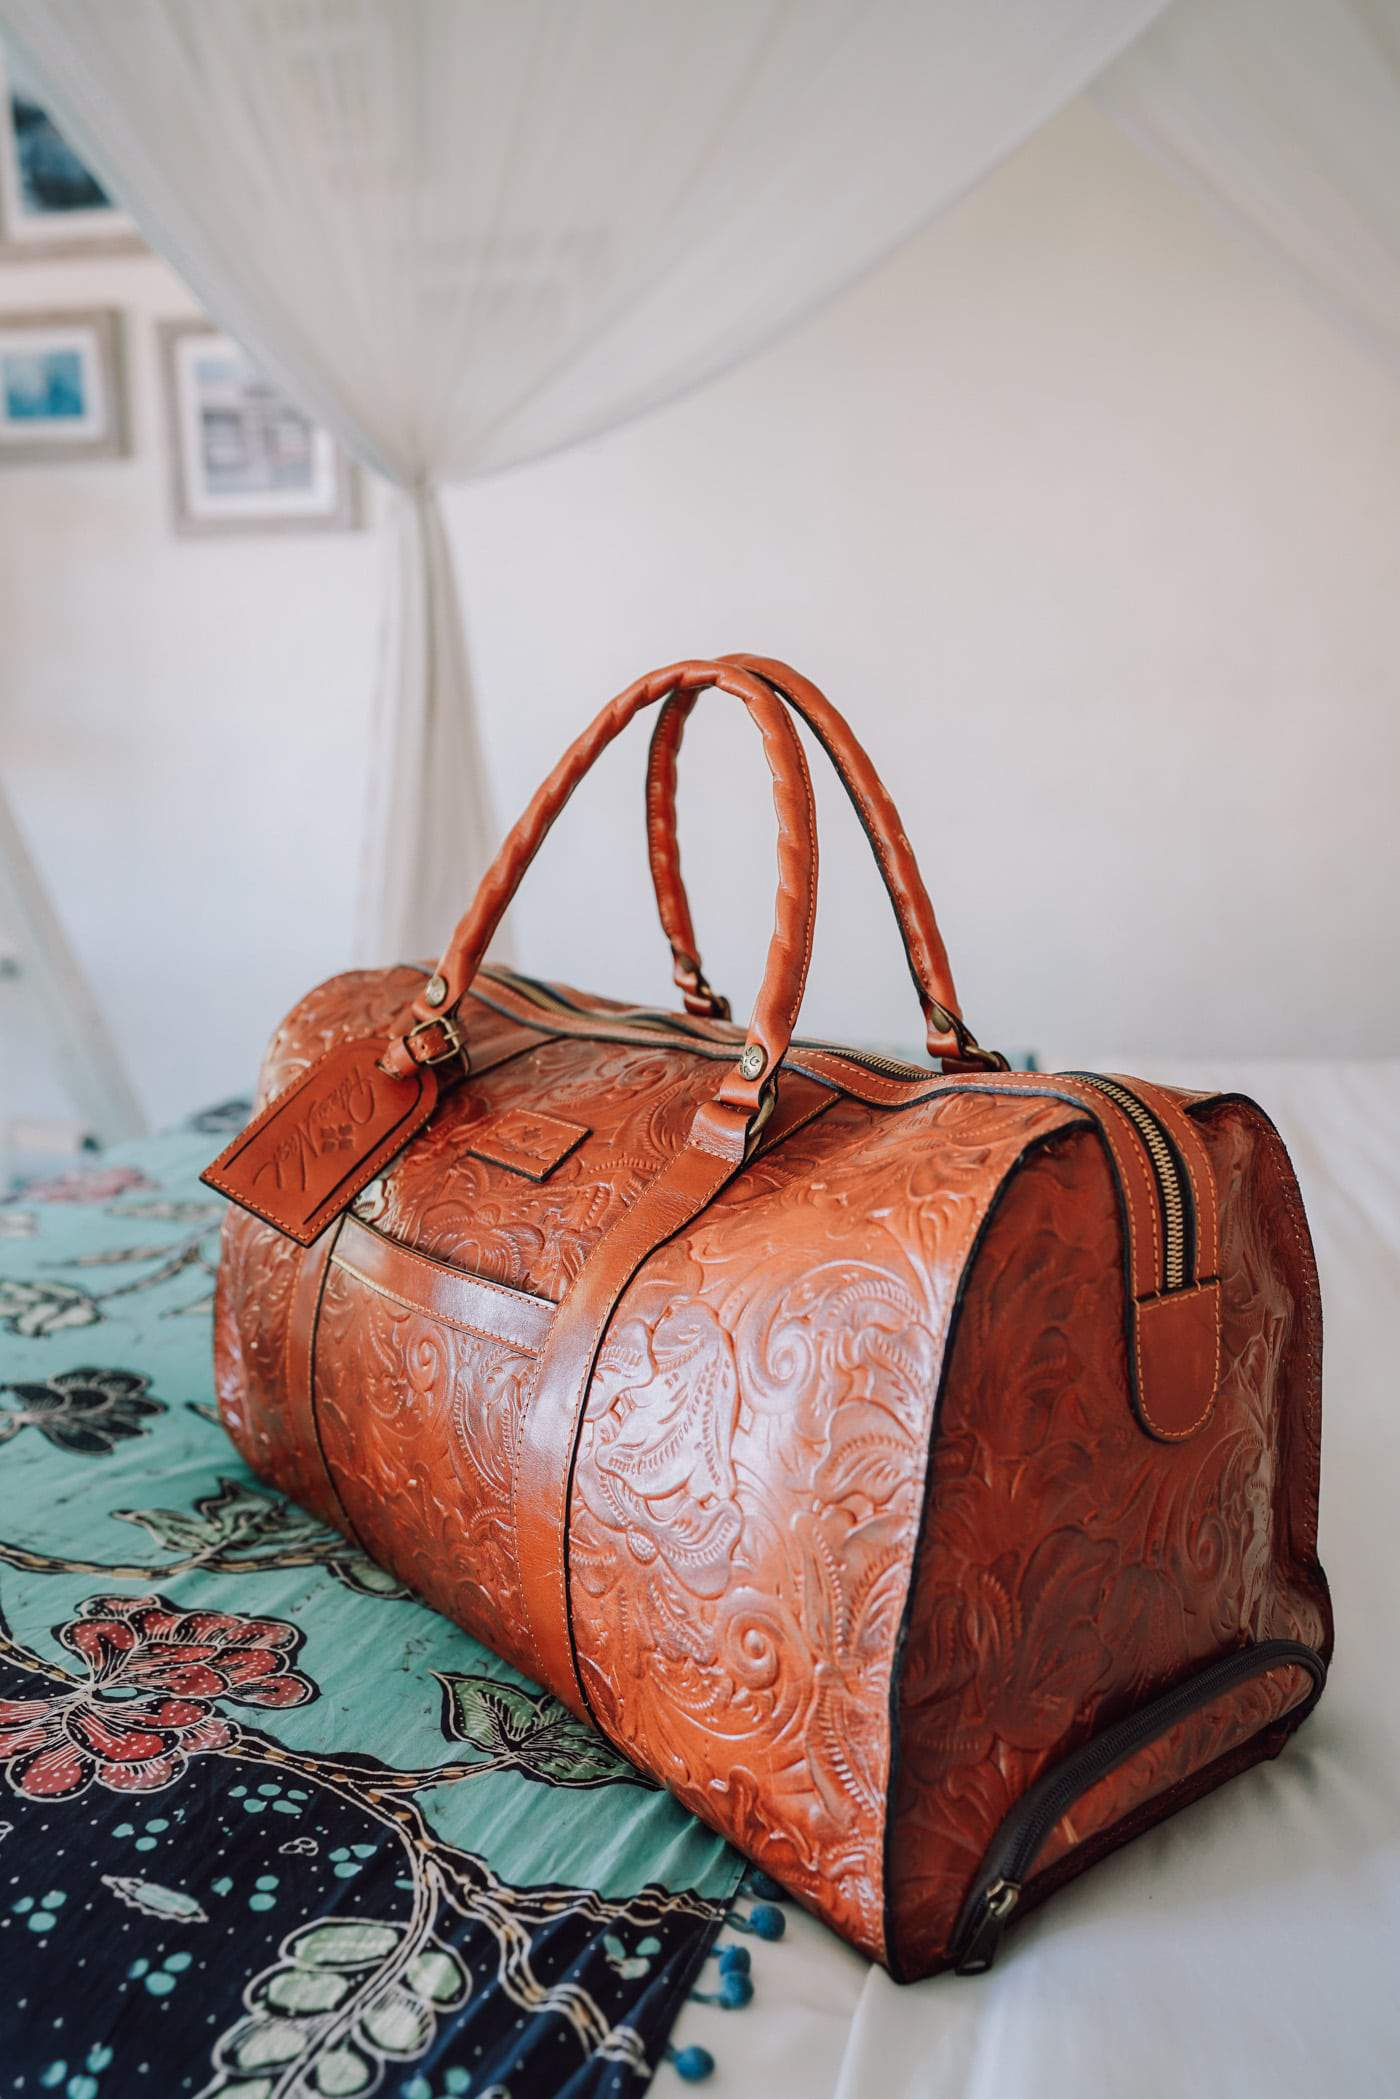 Lifestyle blogger Anna Baun of A Lily Love Affair shares Spring Style with Patricia Nash Designs. This stunning Patricia Nash Avolo Duffle is the perfect luggage for all your travels.